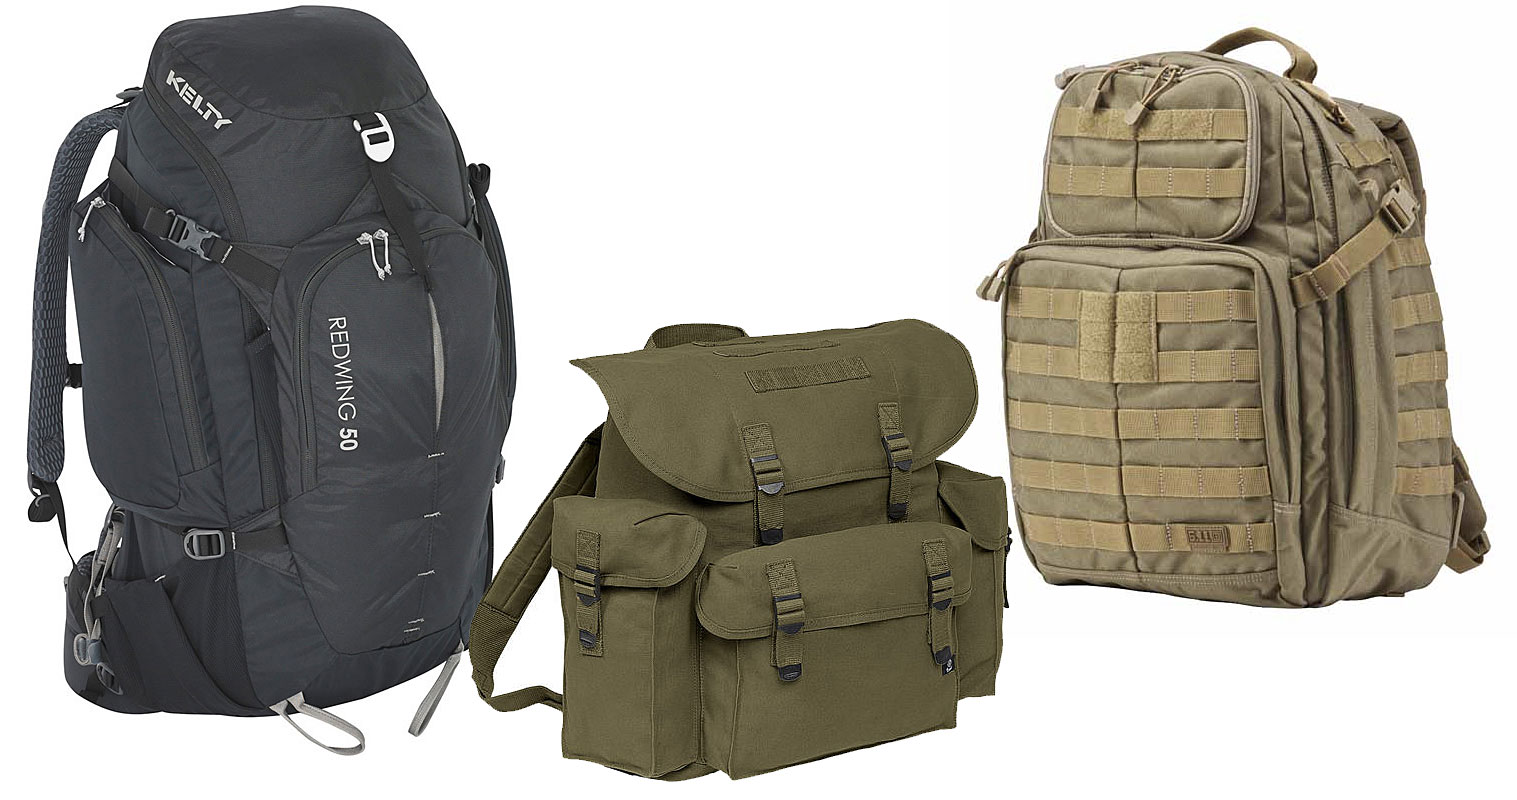 Bug-Out-Bag-Builder-Bug-Out-Bags-5.jpg